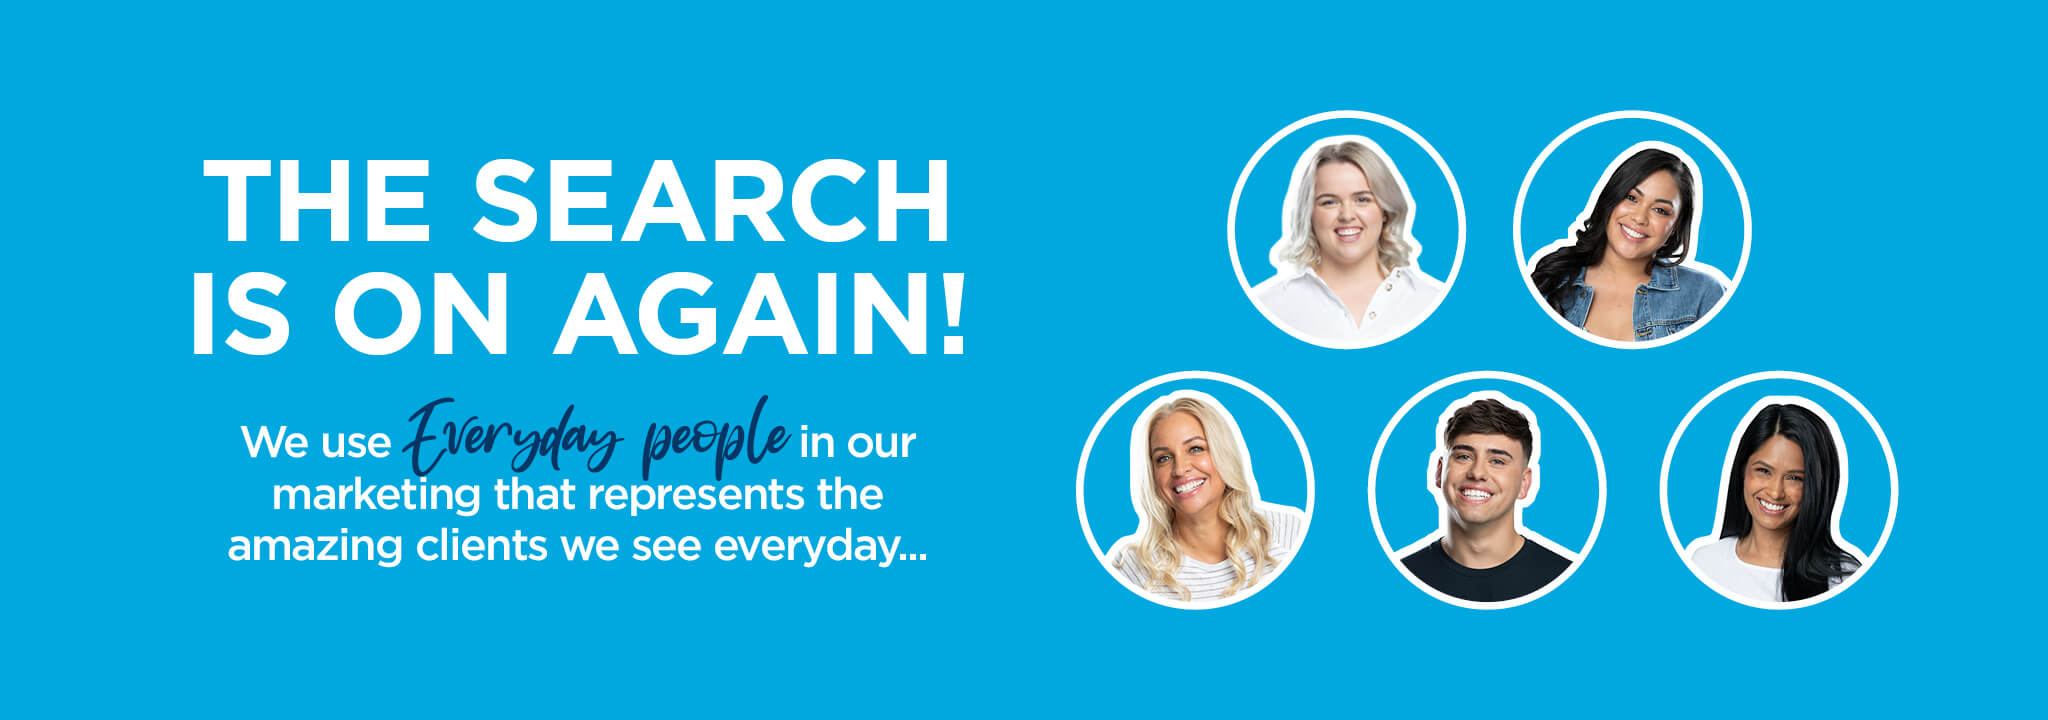 The search for new everyday faces is on again!